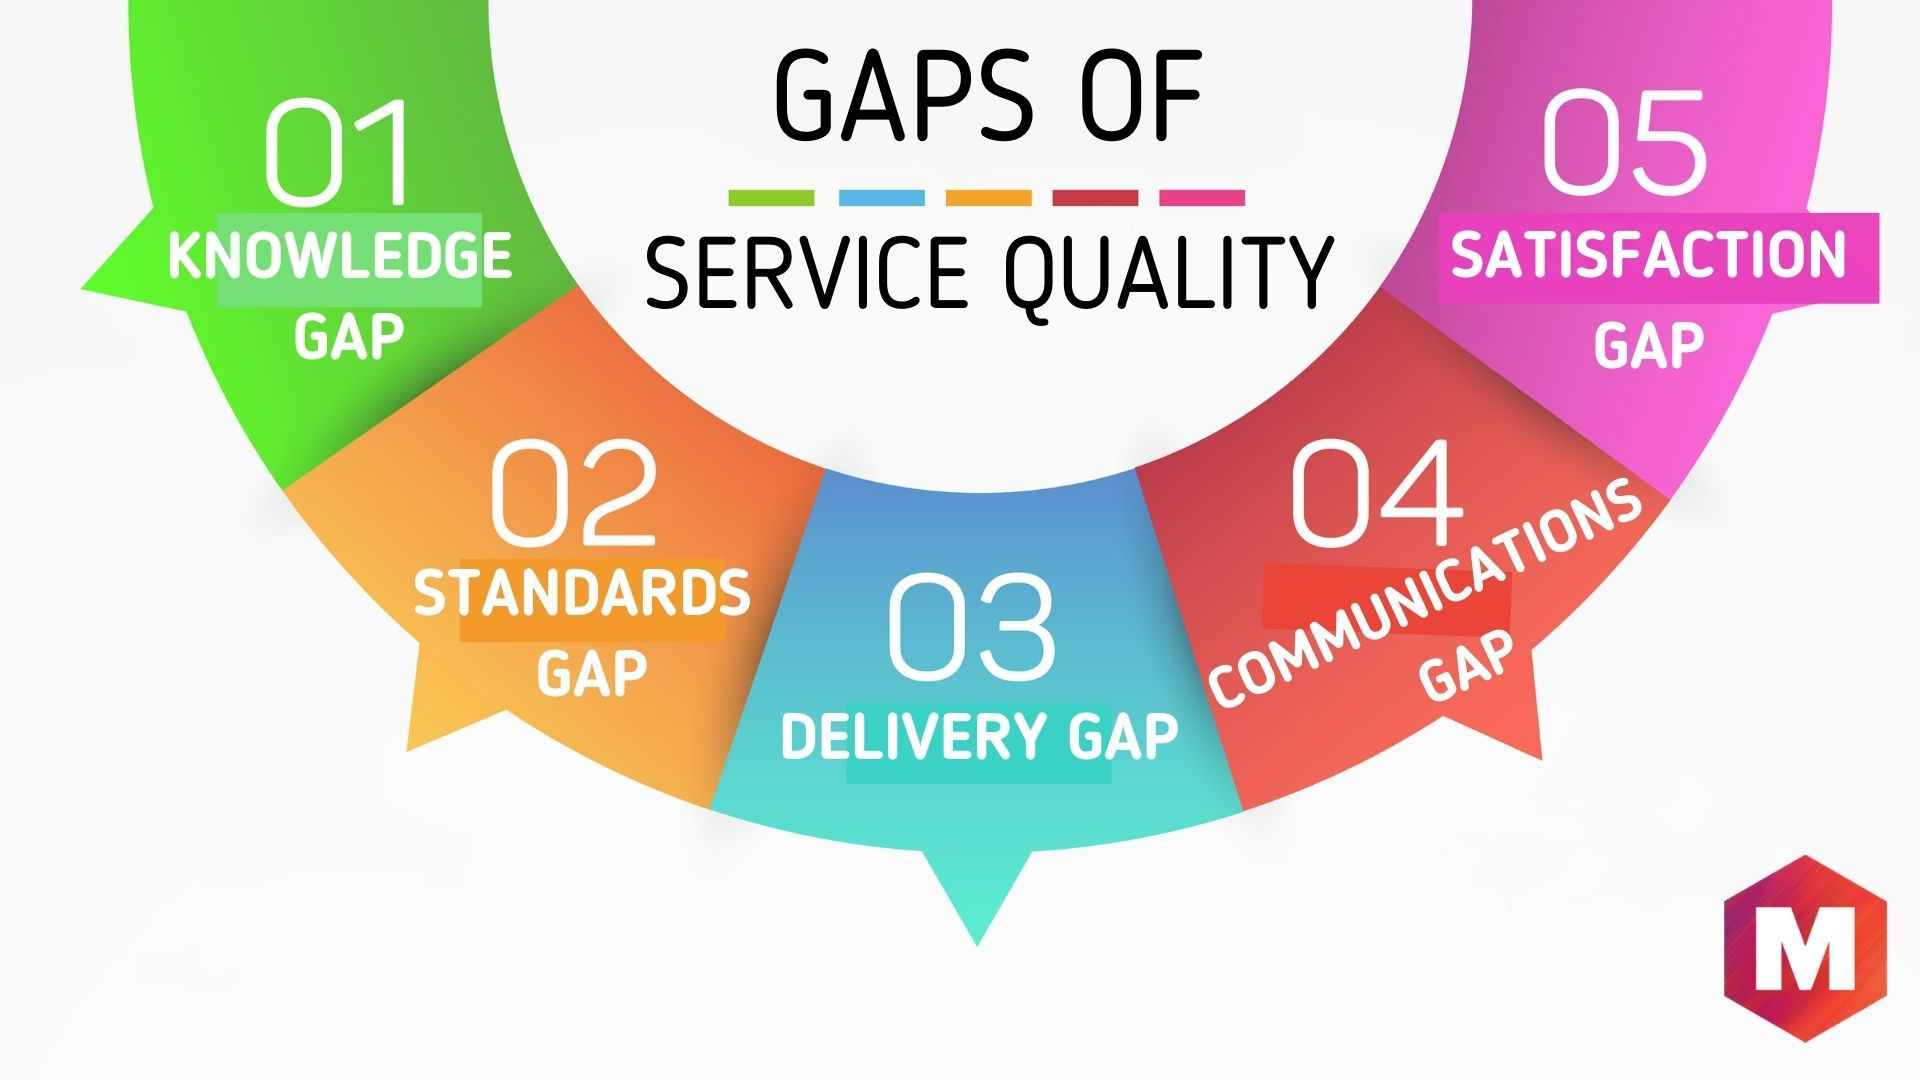 The five Gaps of Service Quality